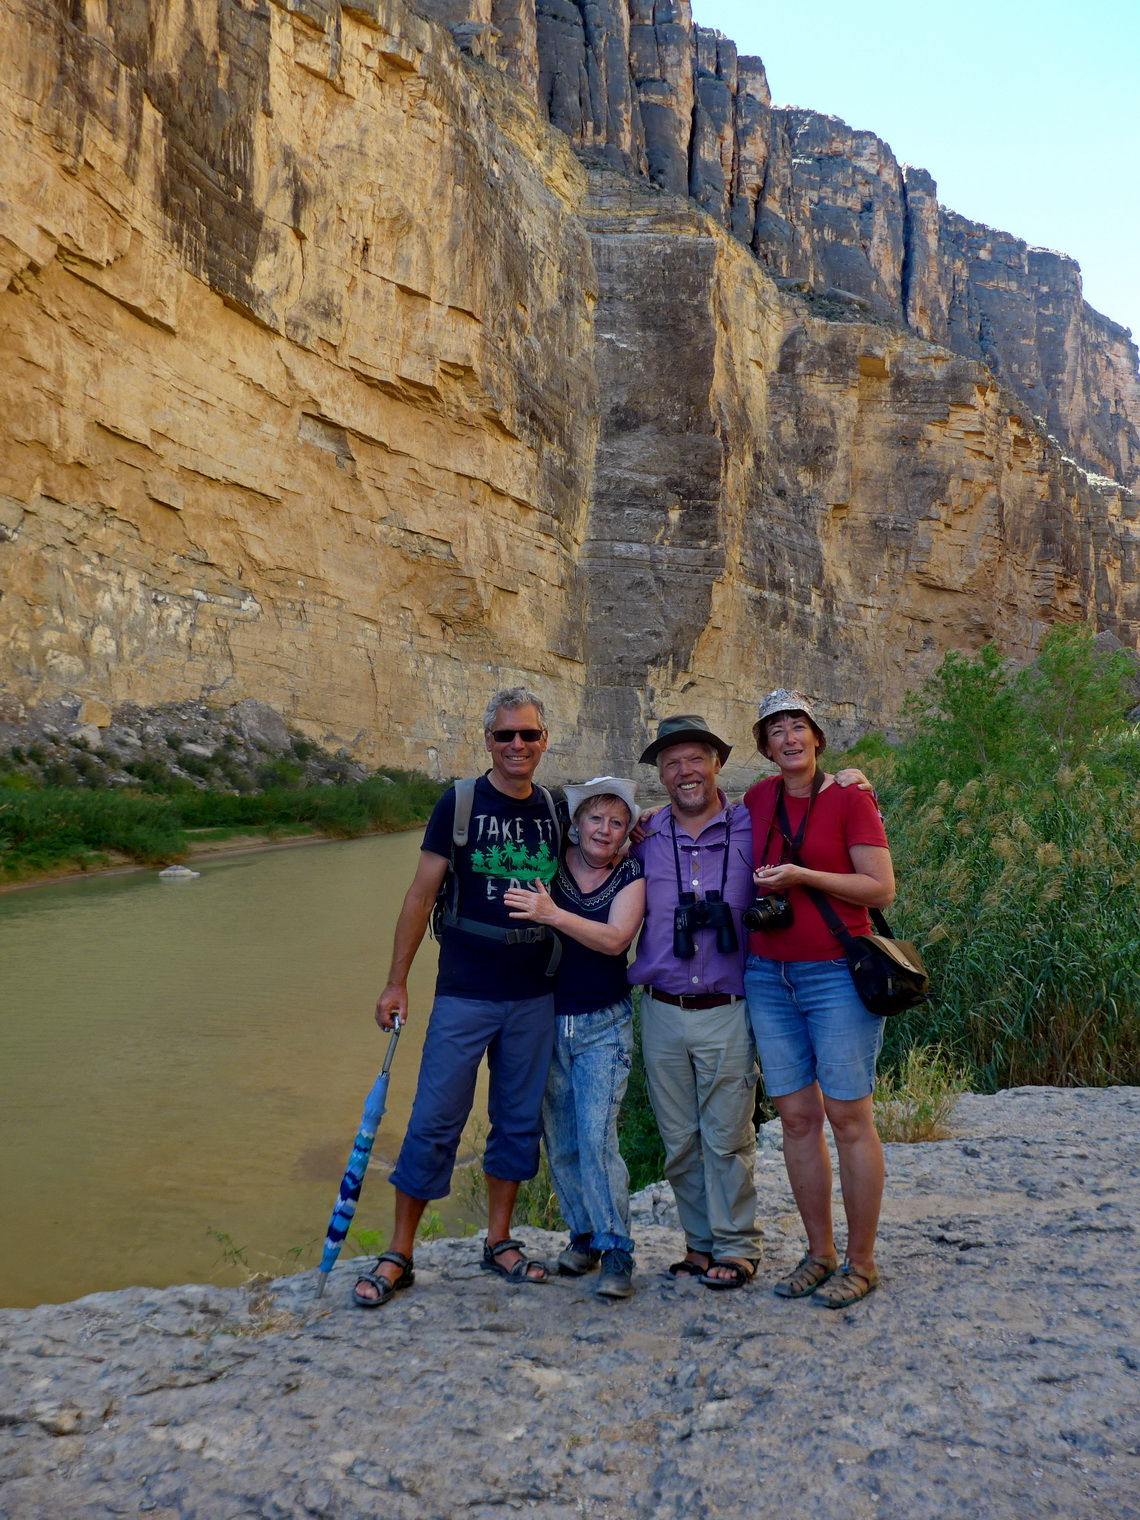 Alfred, Marion, Elmar and Ilse in the Santa Elena Canyon